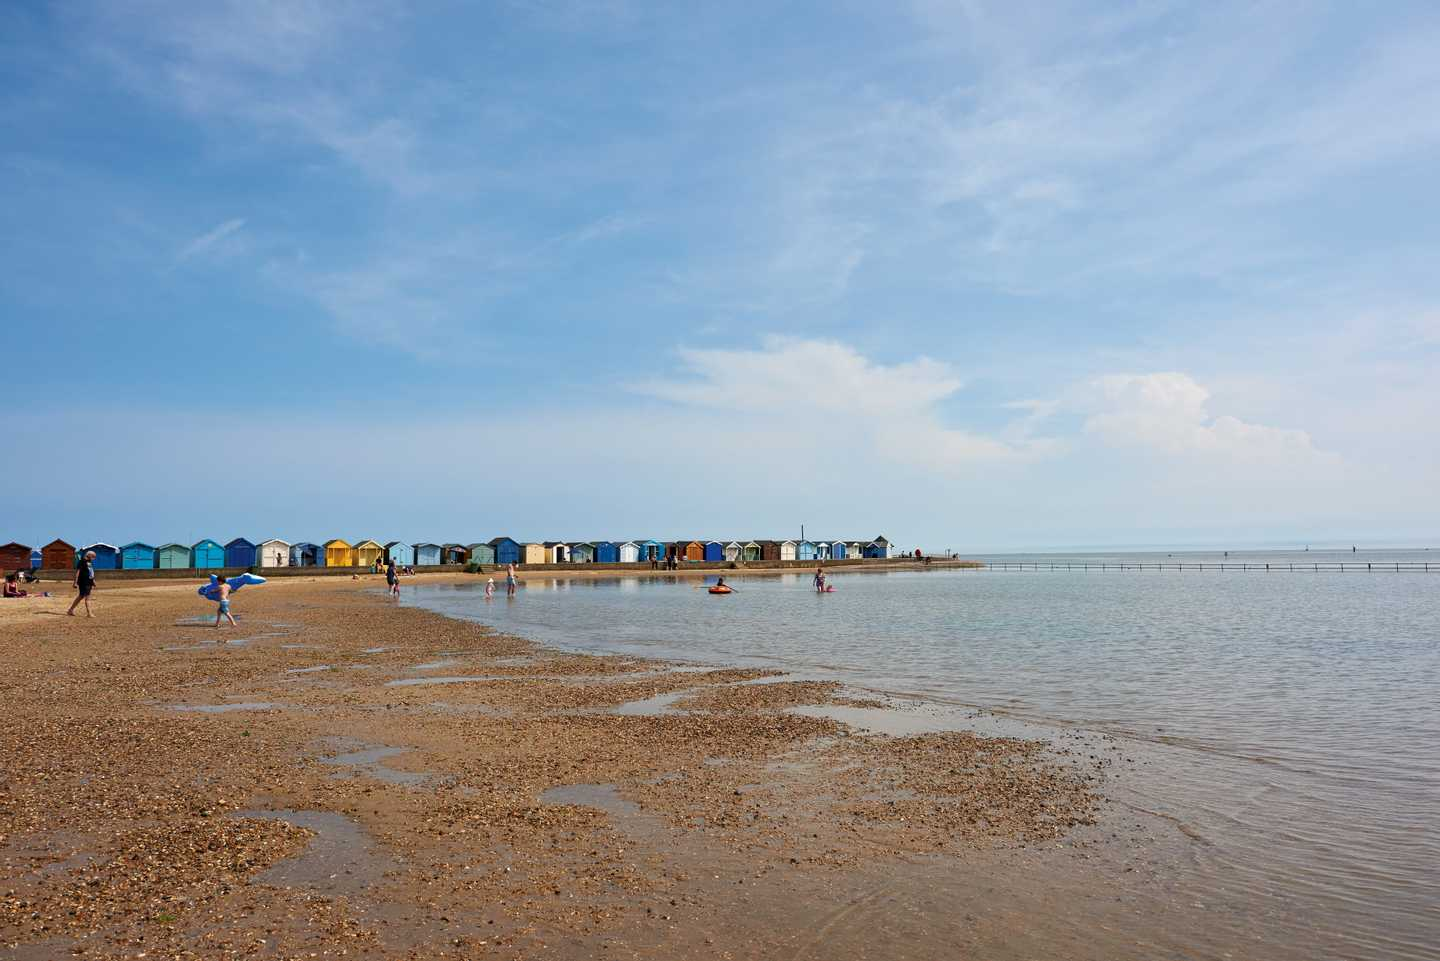 Brightlingsea Beach © Amanda Slater (flickr)